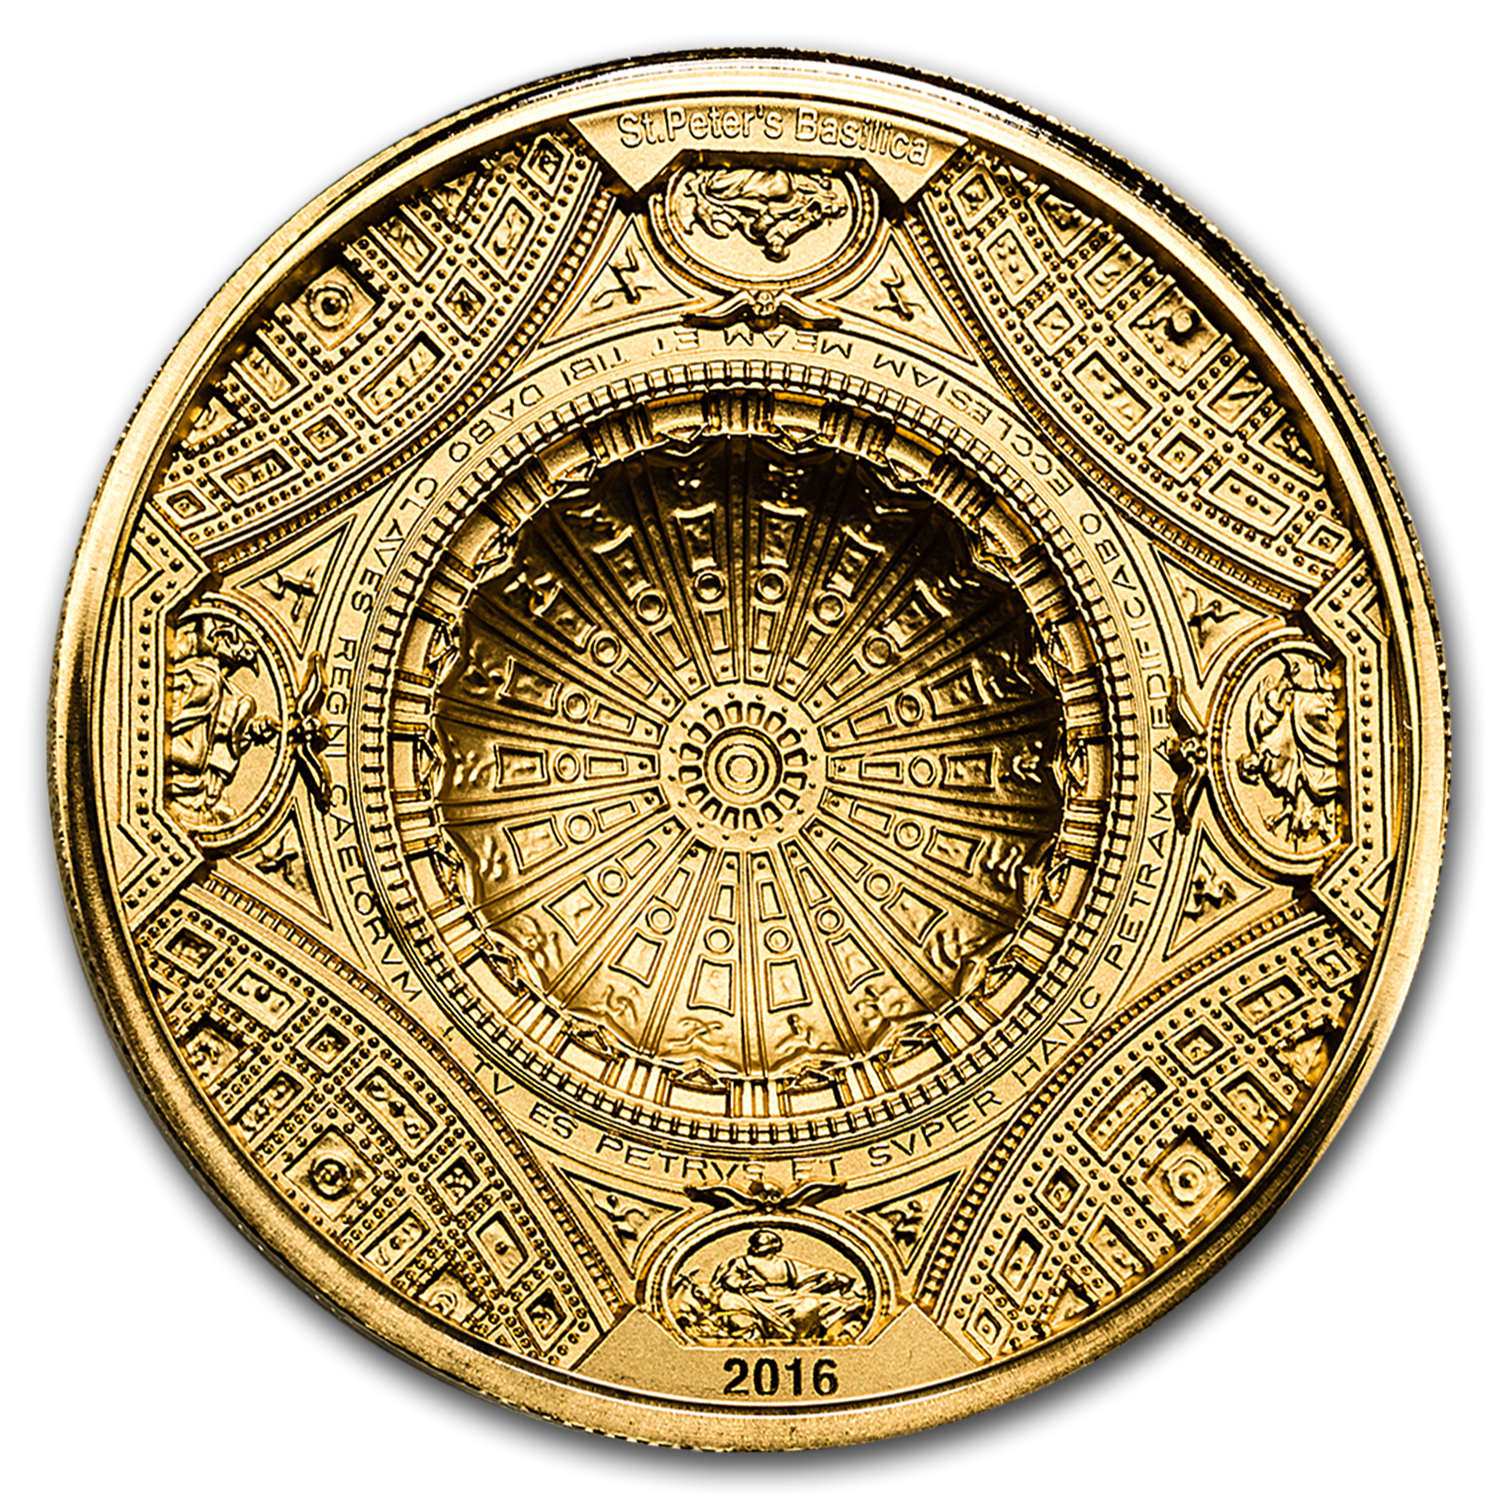 2016 Cook Islands 100 gram Gold St. Peter's Basilica 4-Layer Coin